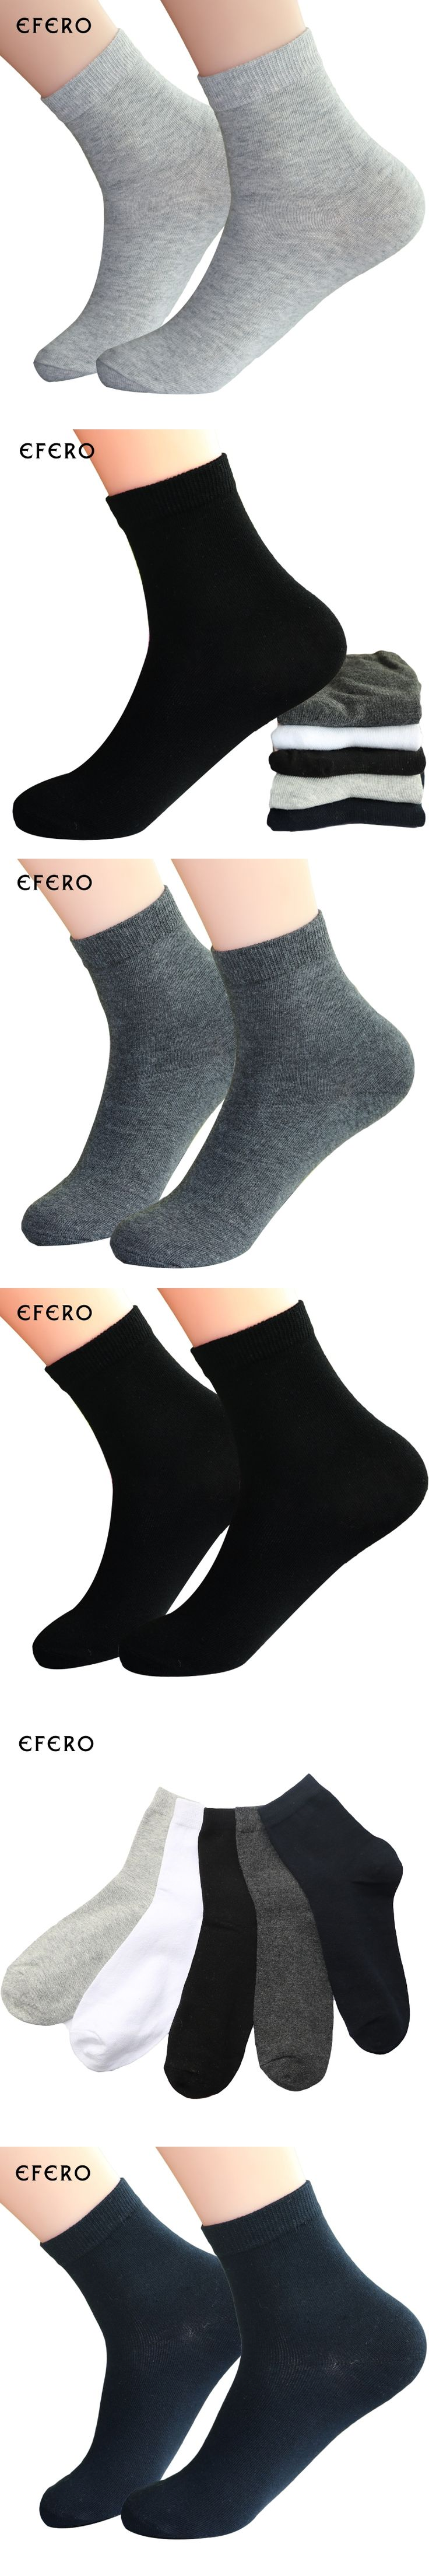 1Pair Breathable Casual Male Low Cut Socks Short Socks For Men Chaussettes Homme Meias Homens Man Compression Ankle Sock Solid